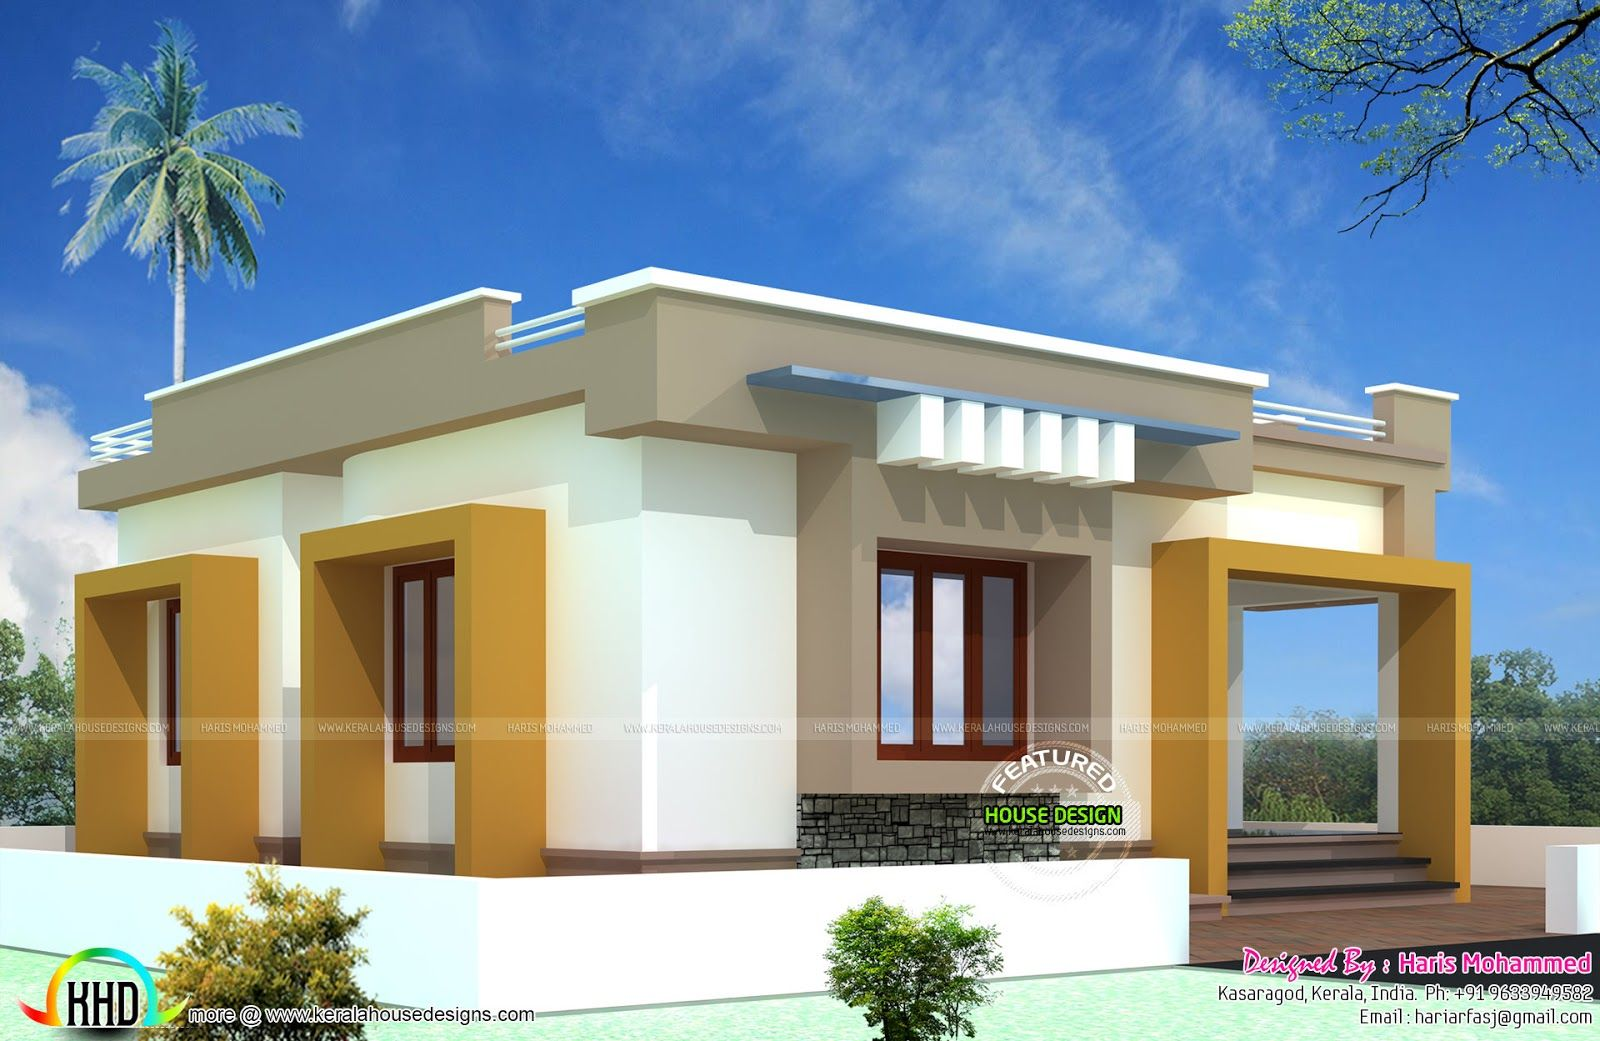 Great U20b910 Lakhs Budget Smallbudget Single Floor House In An Area Of 812 Square  Feet By Haris Mohammed, Kasaragod, Kerala.